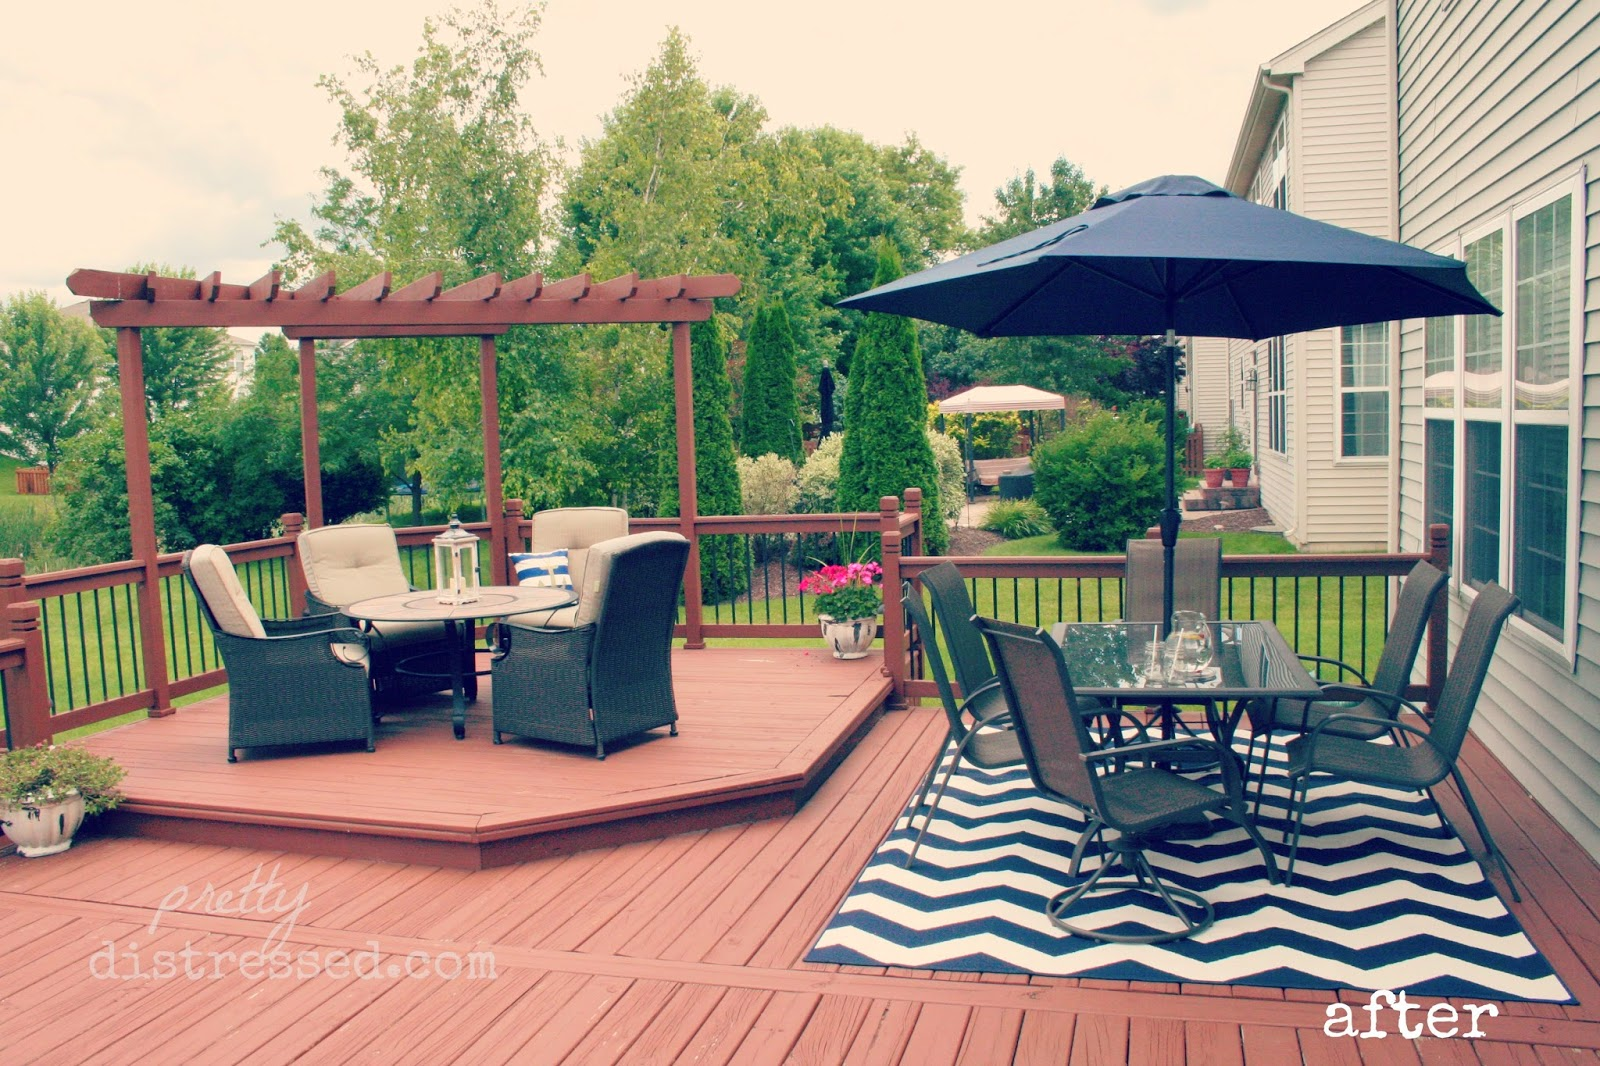 Spectacular It us Not Too Late to Update that Outdoor Space and DIY Nautical Pillow